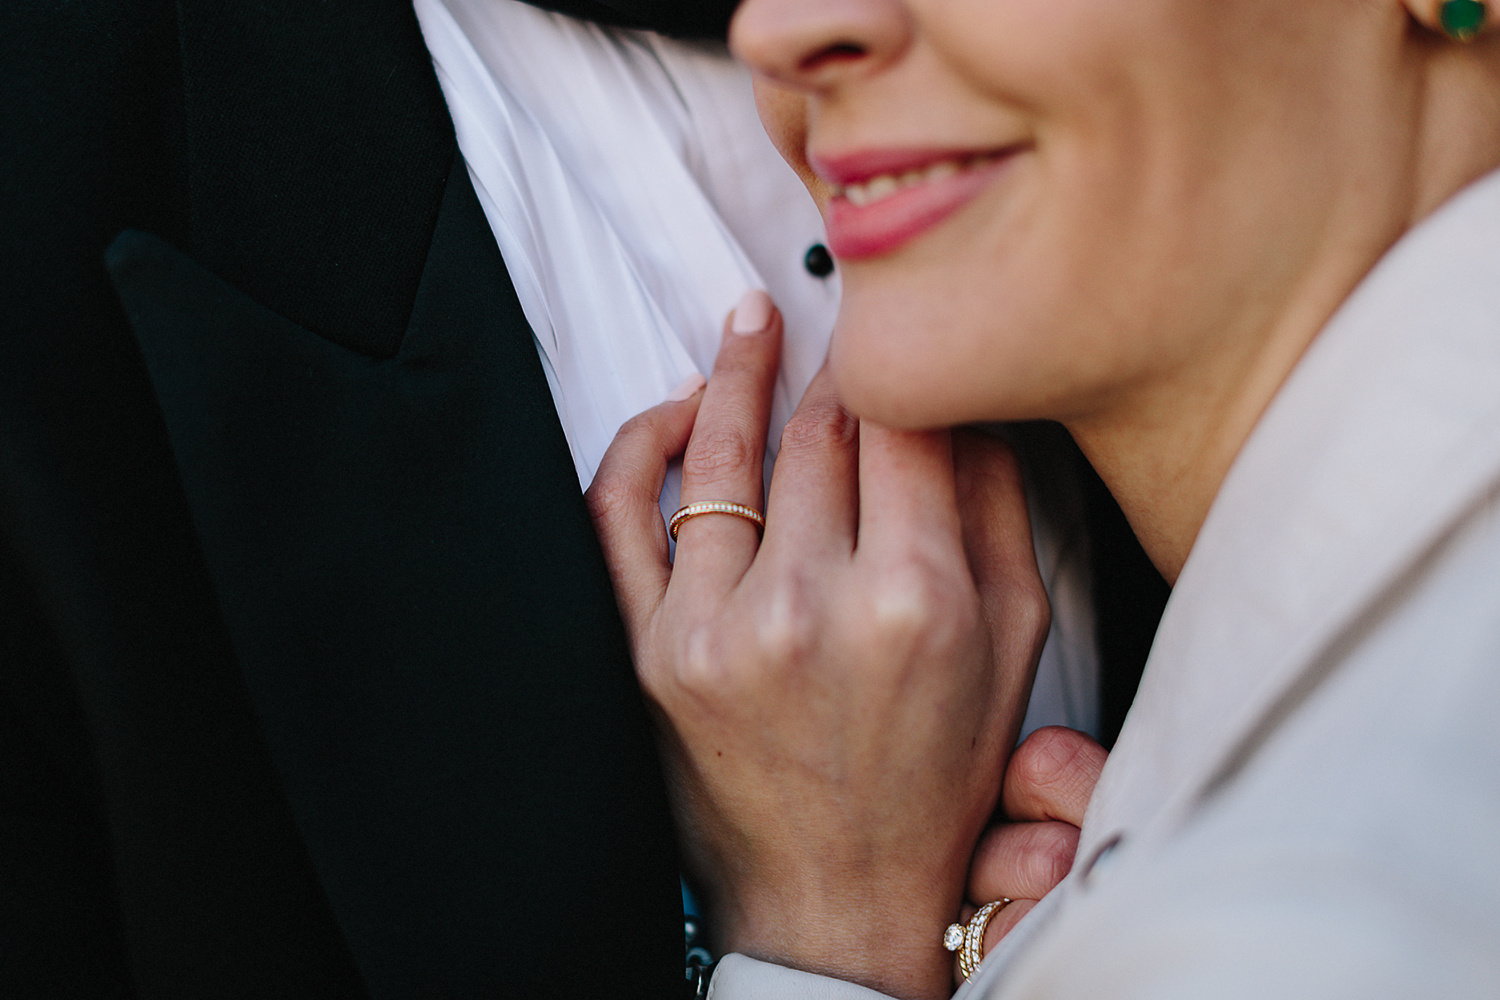 elopement-wedding-old-city-hall-nathan-phillips-square-toronto-wedding-photographer-ryanne-hollies-photography-candid-documentary-portraits-of-bride-and-groom-osgoode-hall-toronto-photo-location-trendy-cool-couple-ring-details.jpg